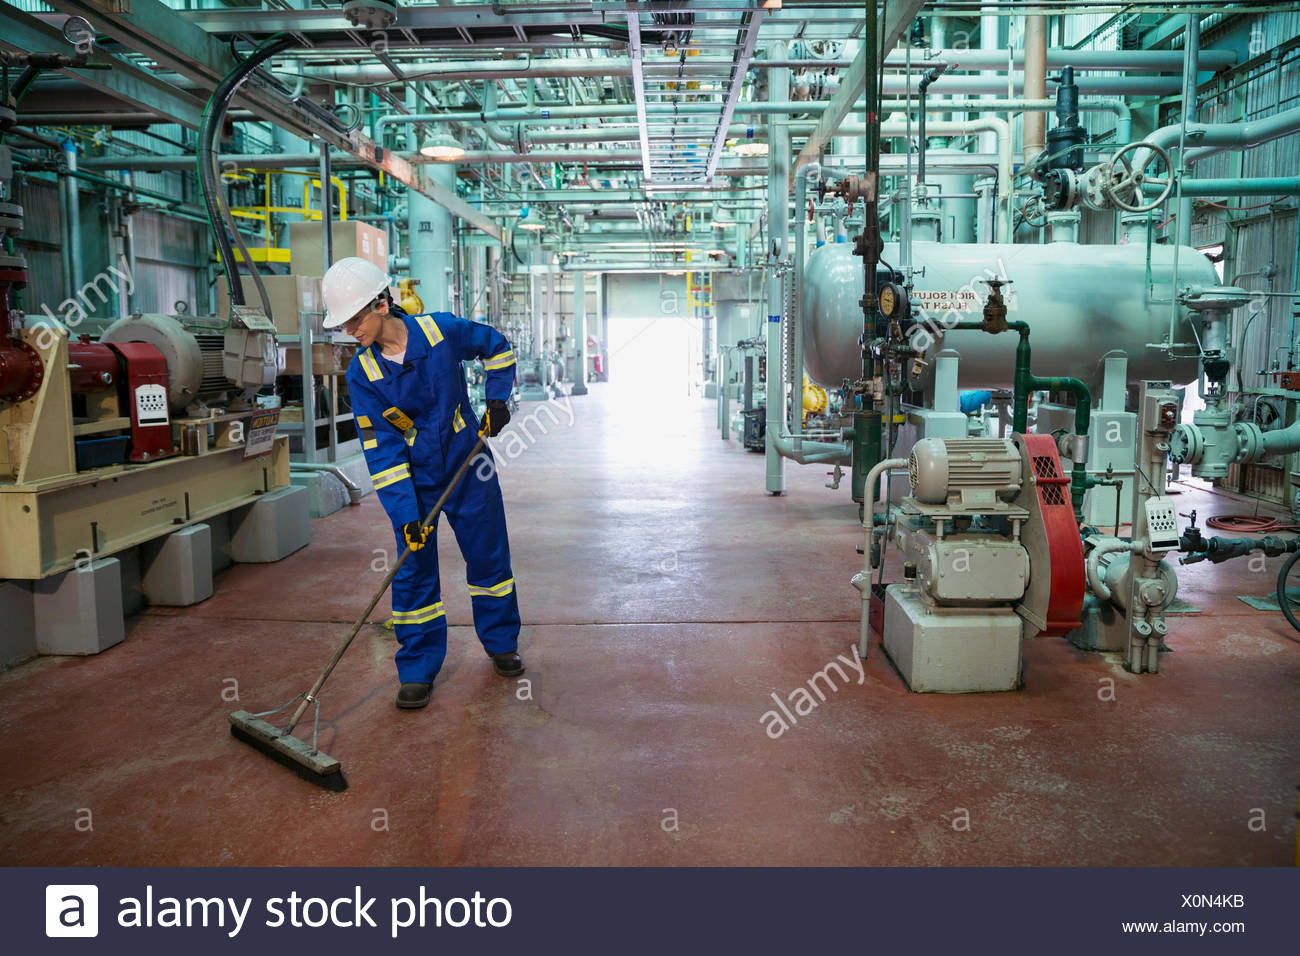 Female worker sweeping floor of gas plant - Stock Image